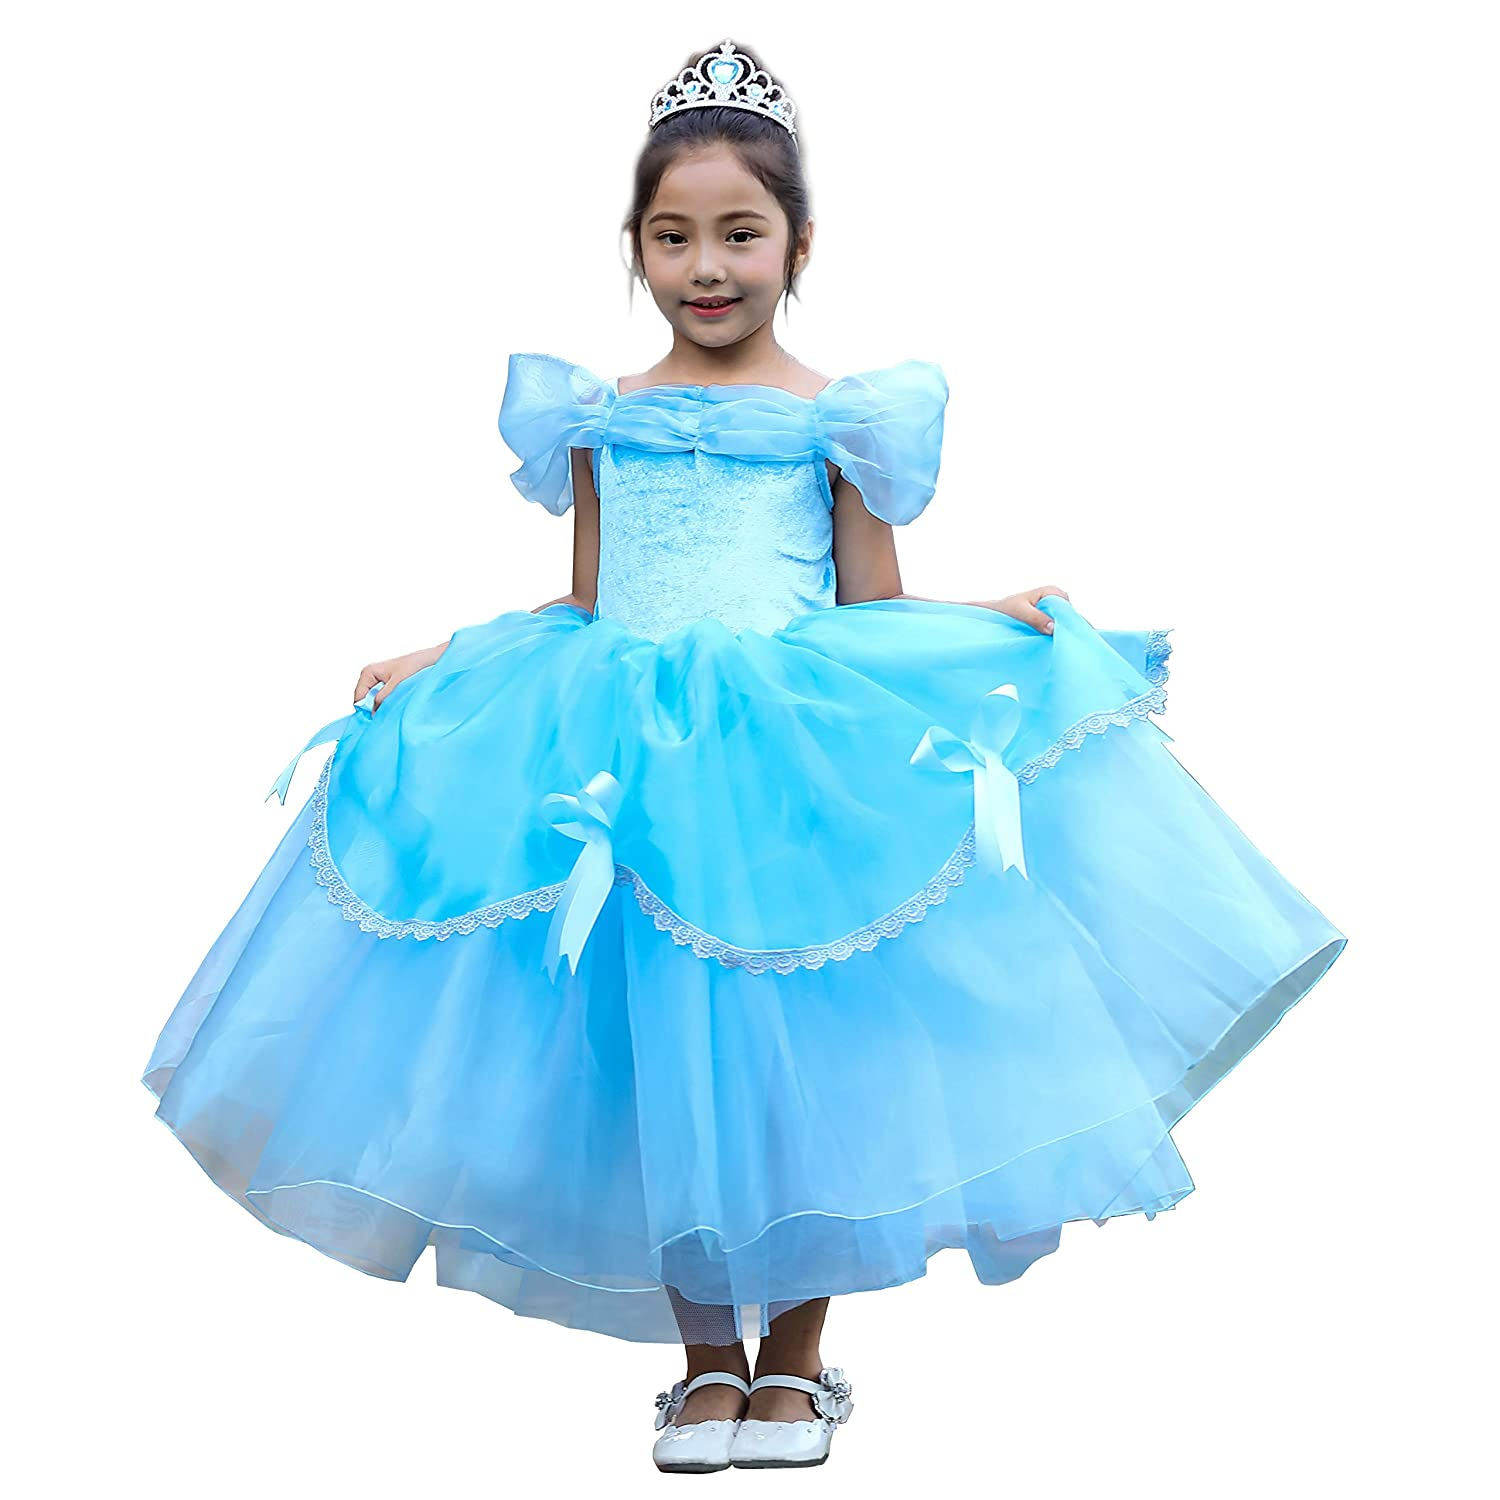 Dressy Daisy Girls Princess Belle Dress Up Costumes Halloween Fancy Party Dress